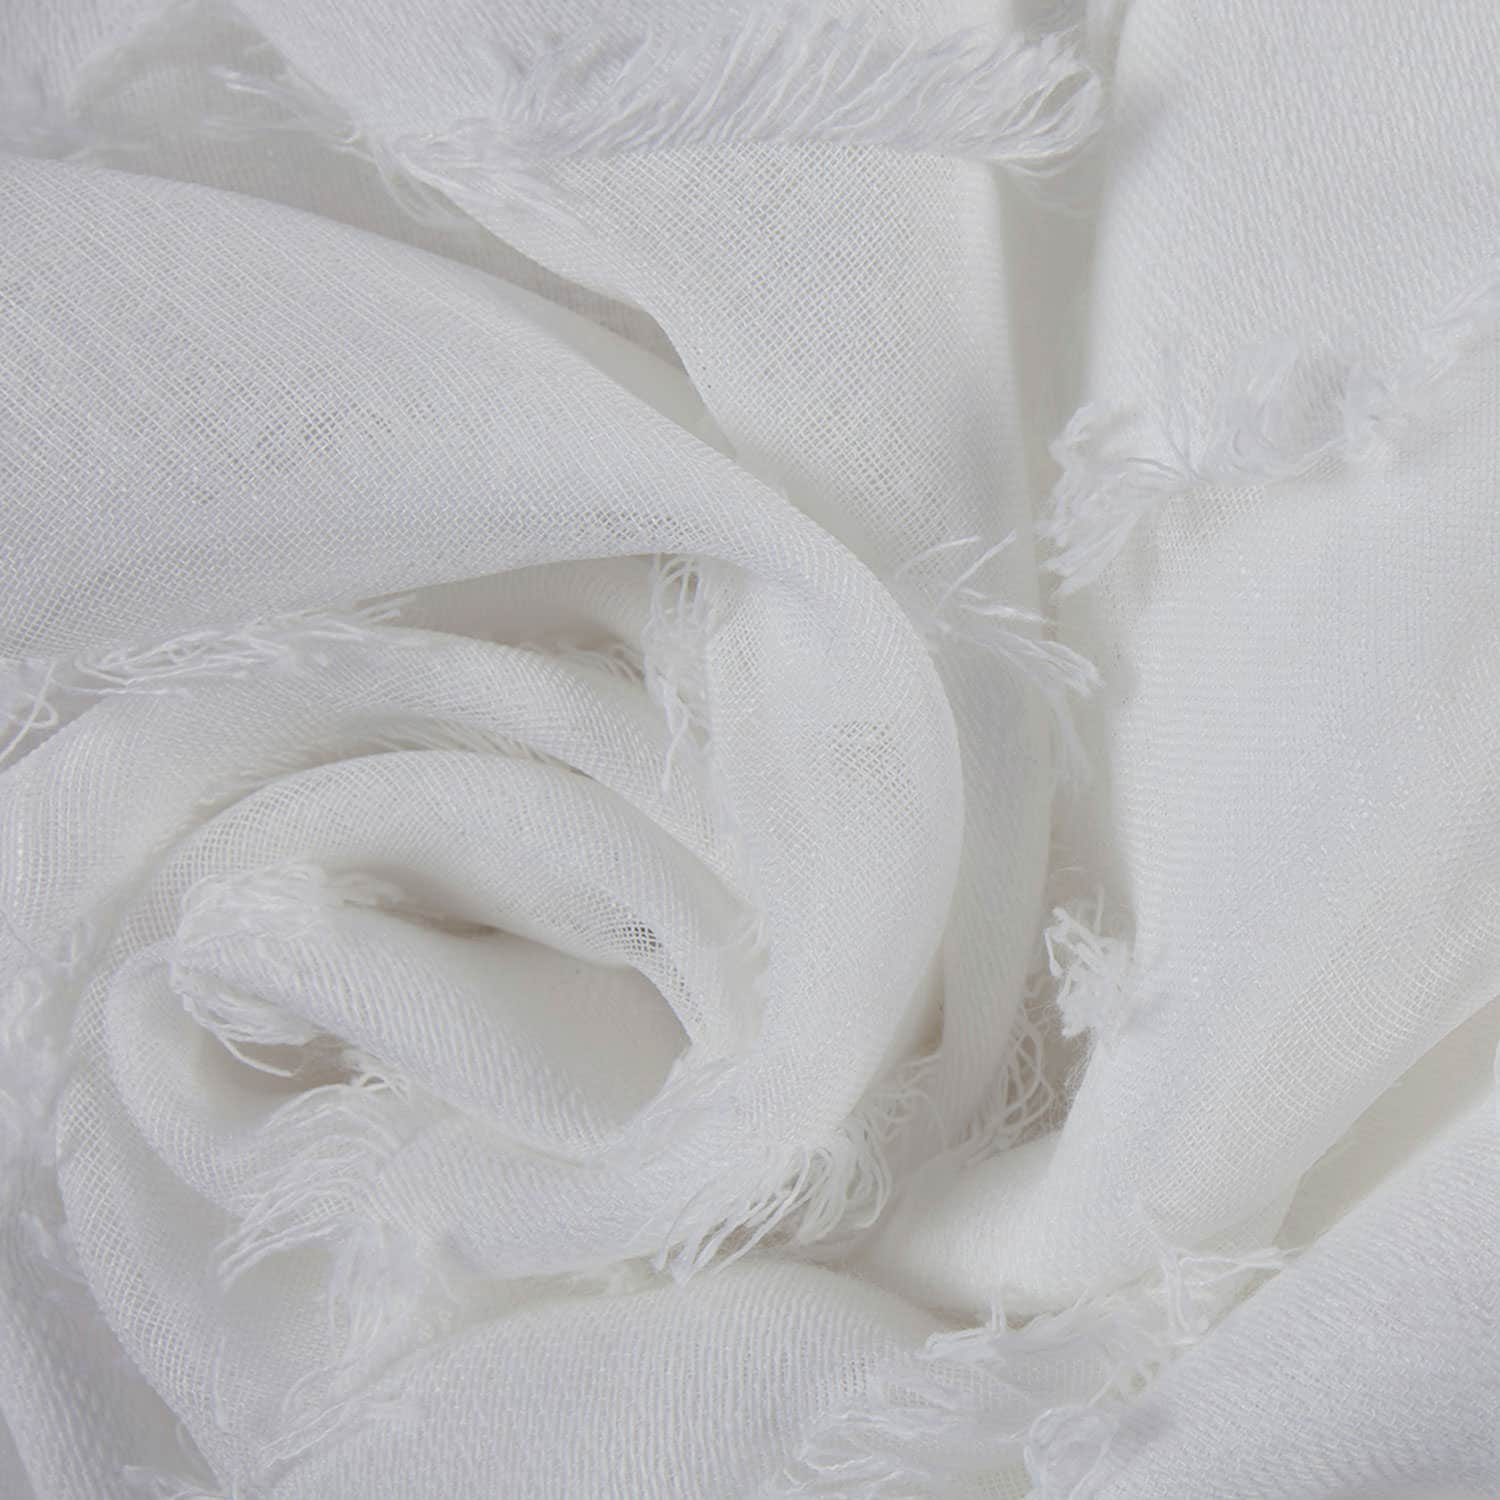 Capella White Patterned Linen Sheer Swatch